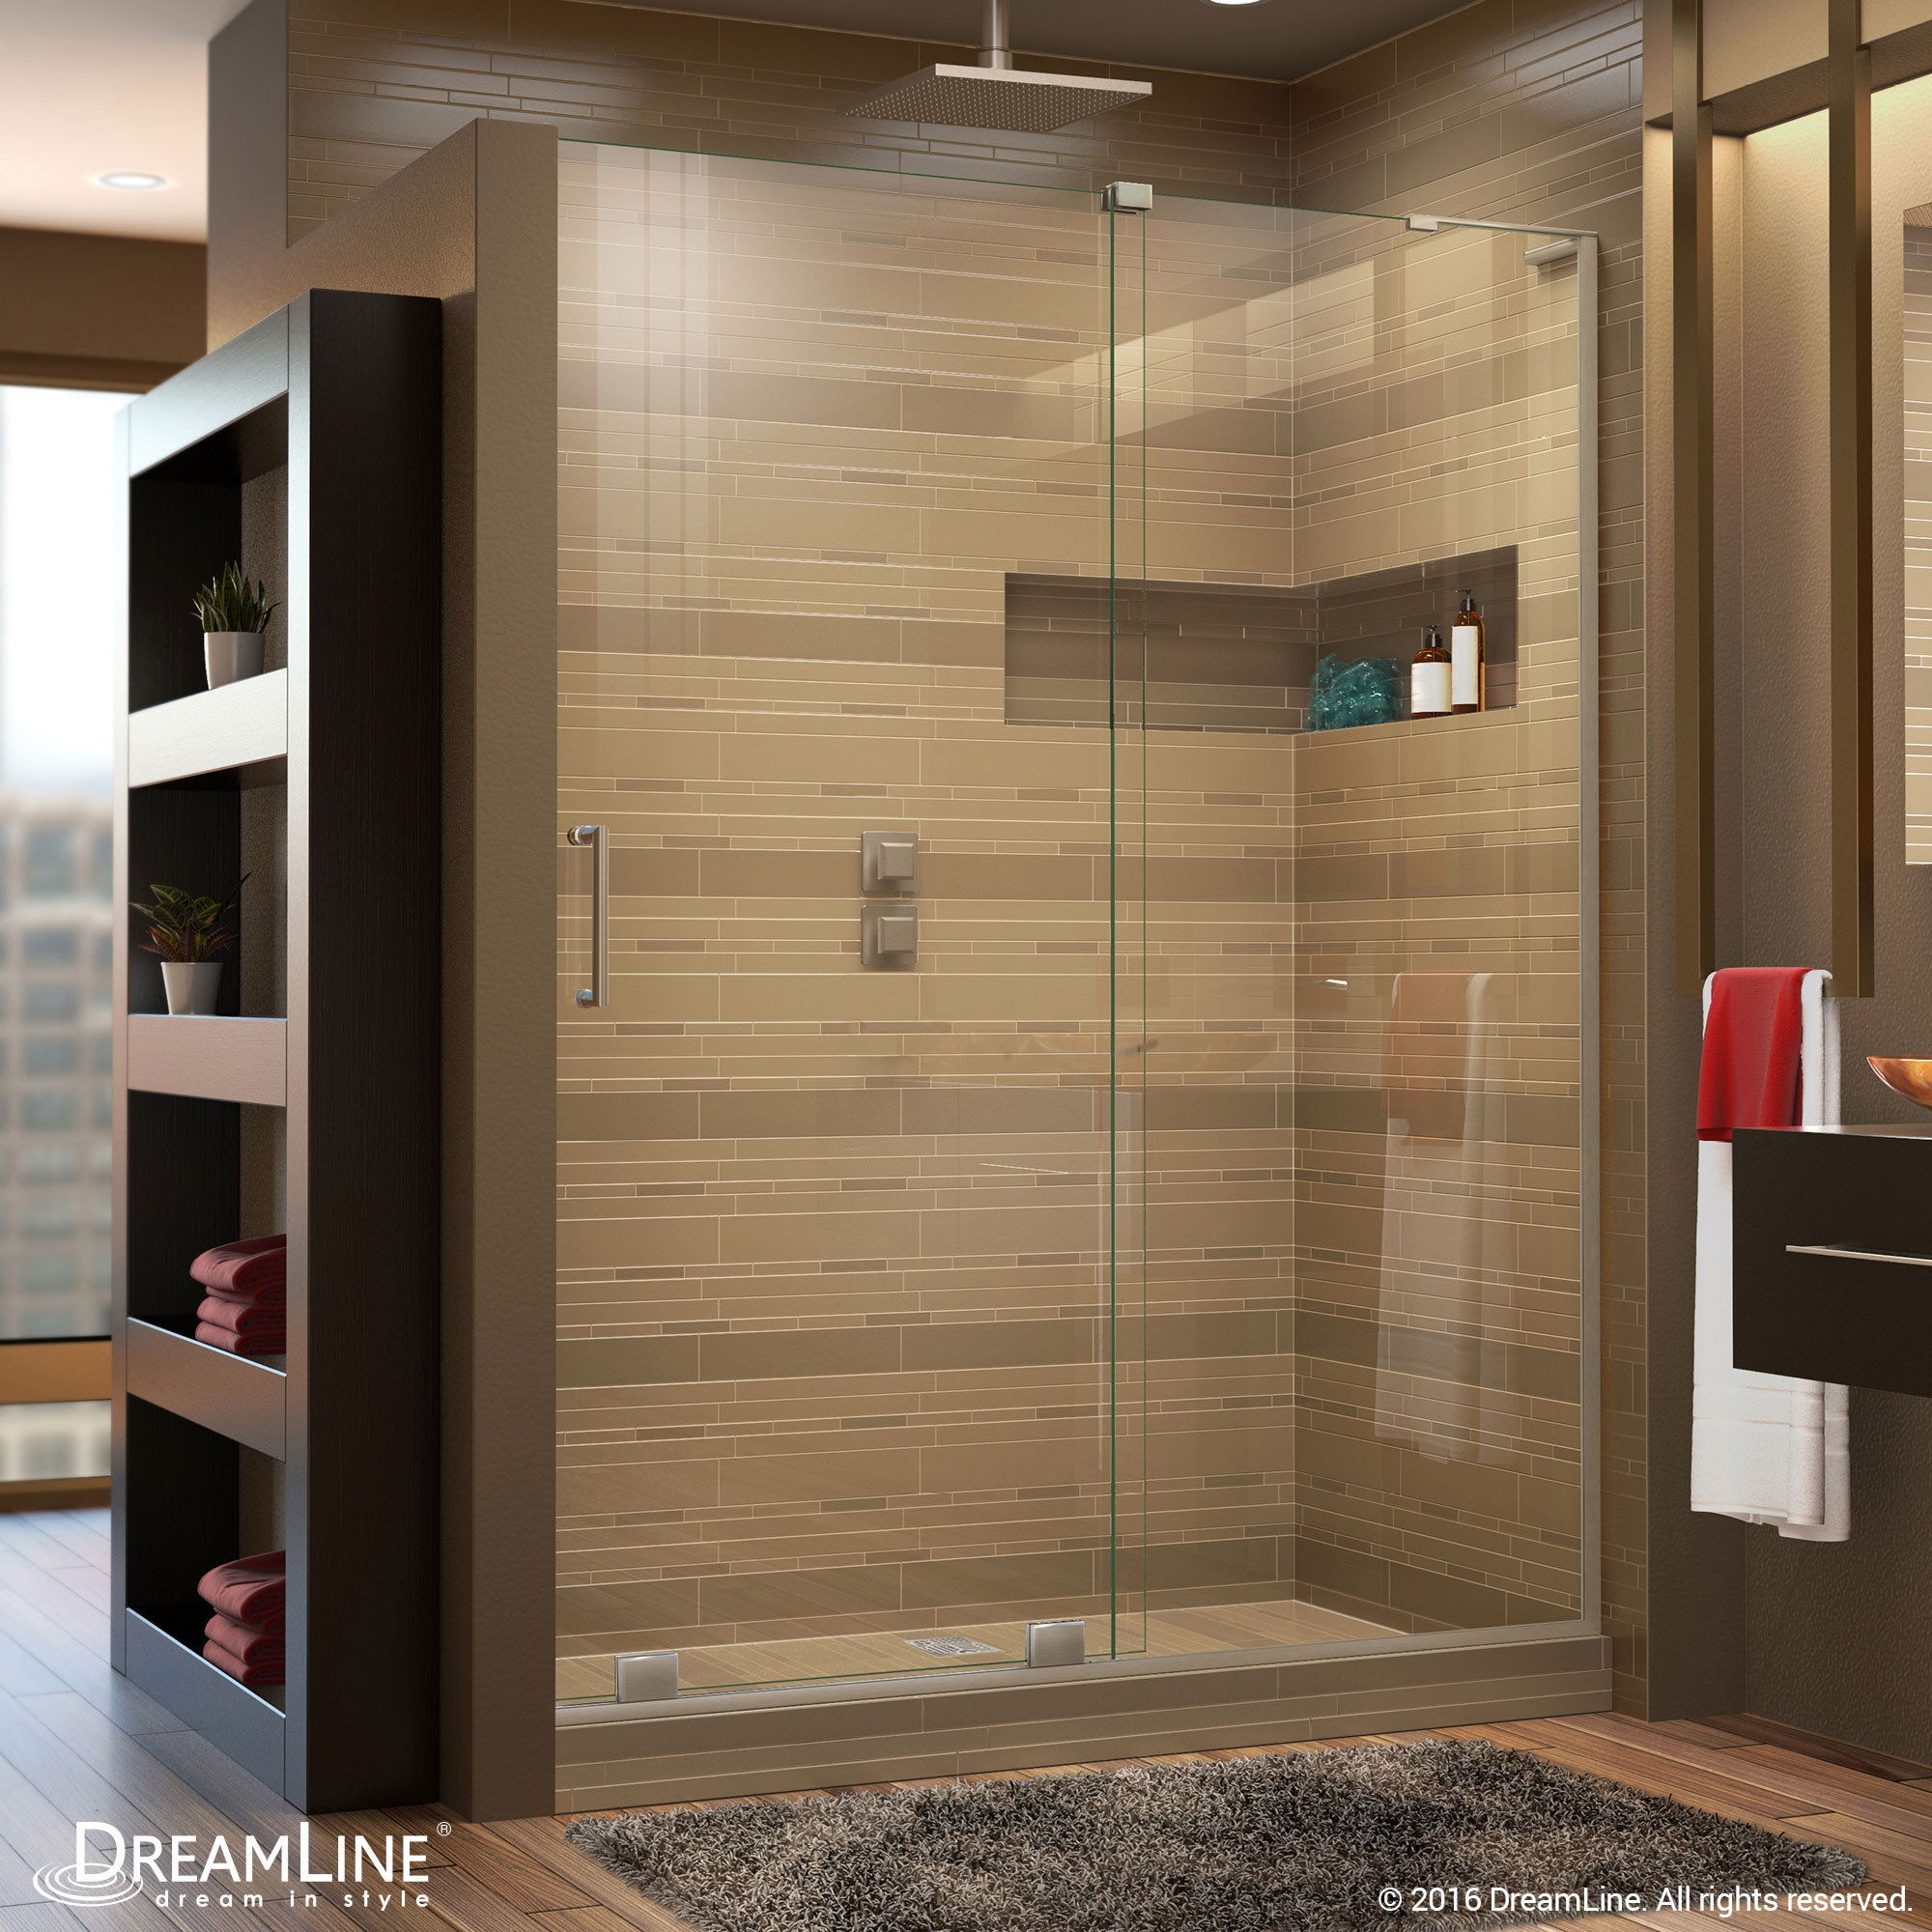 DreamLine SHDR-1948723R-04 Mirage-X Sliding Shower Door in Brushed Nickel With Right-wall Bracket